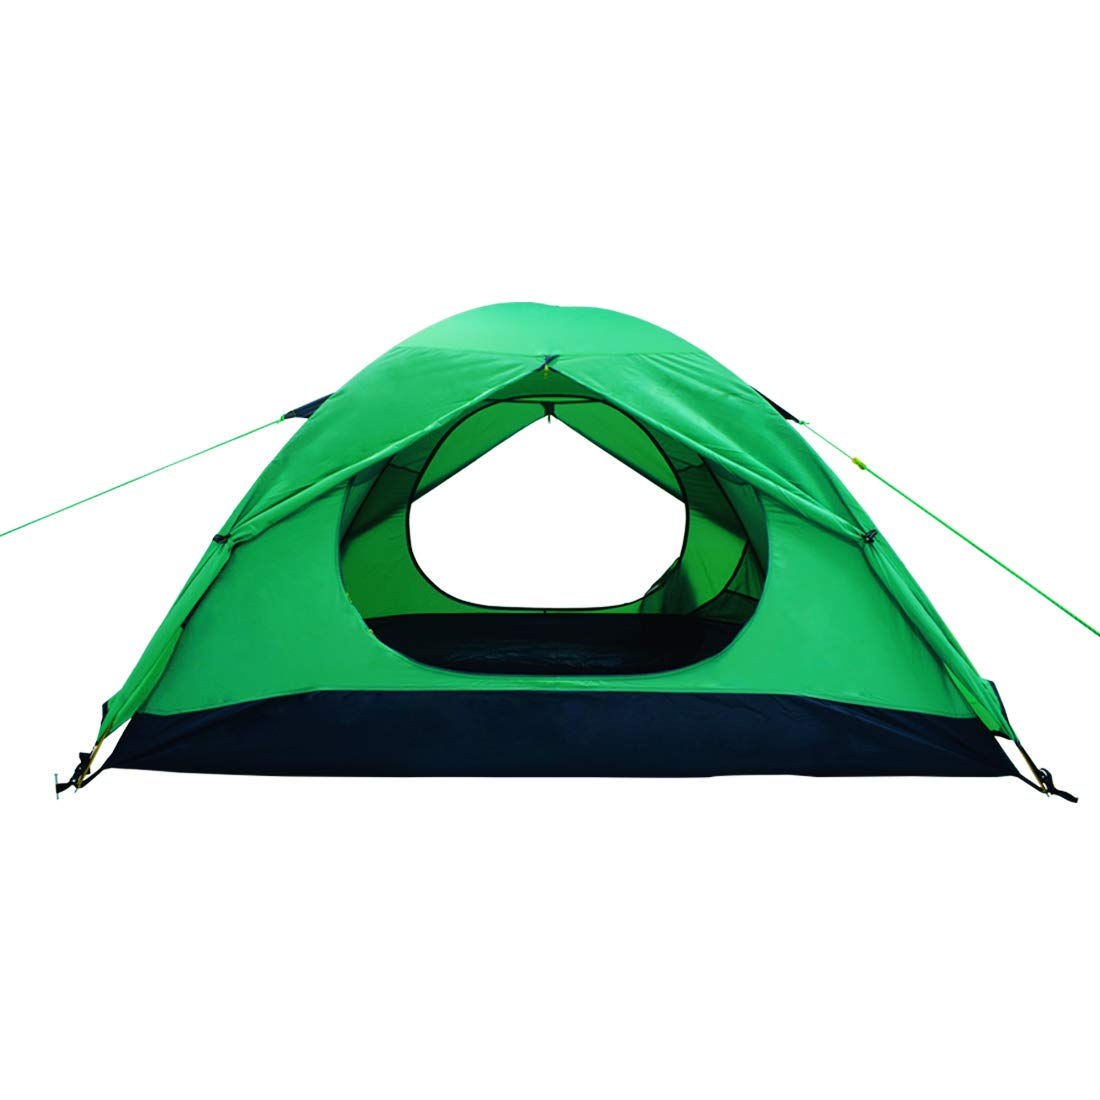 CDM product Geertop 2 Person Backpacking Tent - 3 Season Large Lightweight, Portable for Camping Hiking Travel, Easy Set Up big image